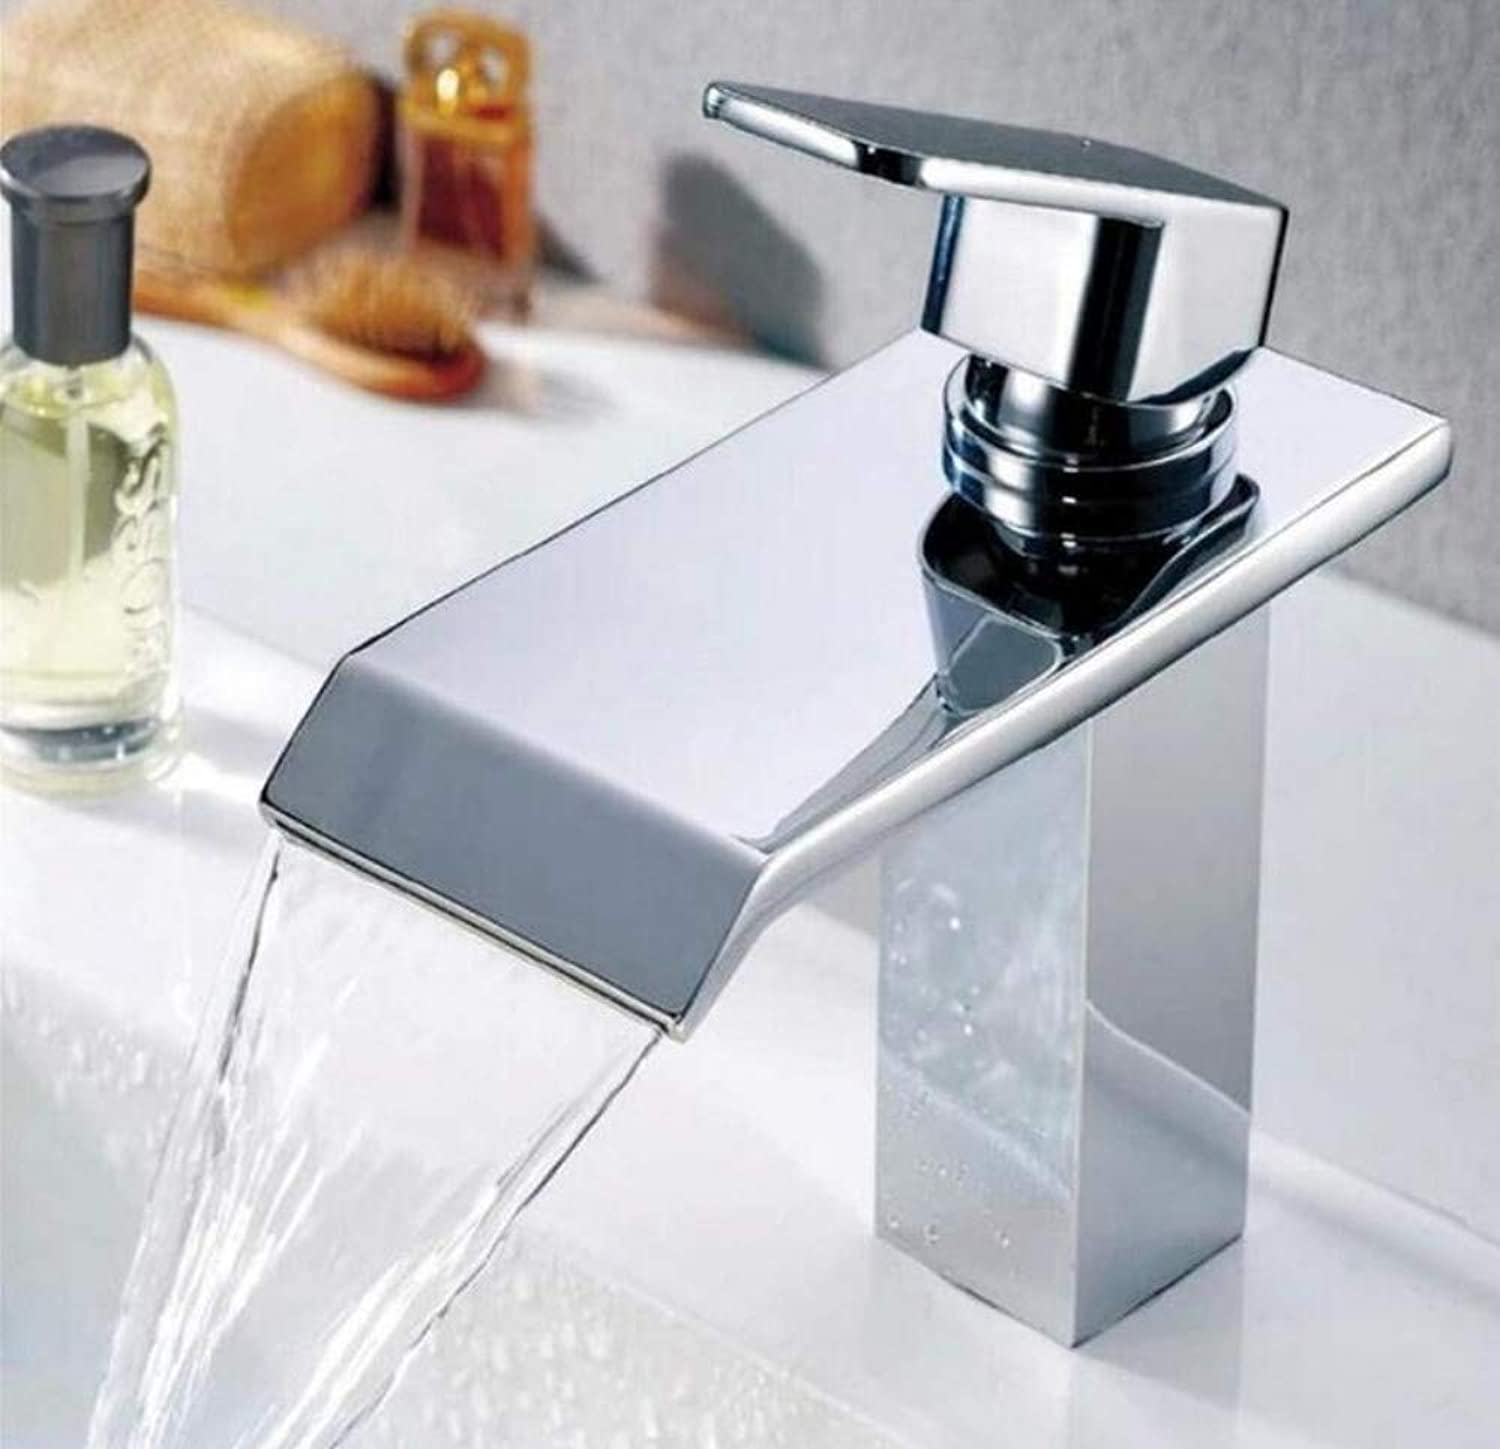 Brass Chrome Hot and Cold Water Mixer Deck Mount Waterfall Bathroom Faucet Vanity Vessel Sinks Mixer Tap